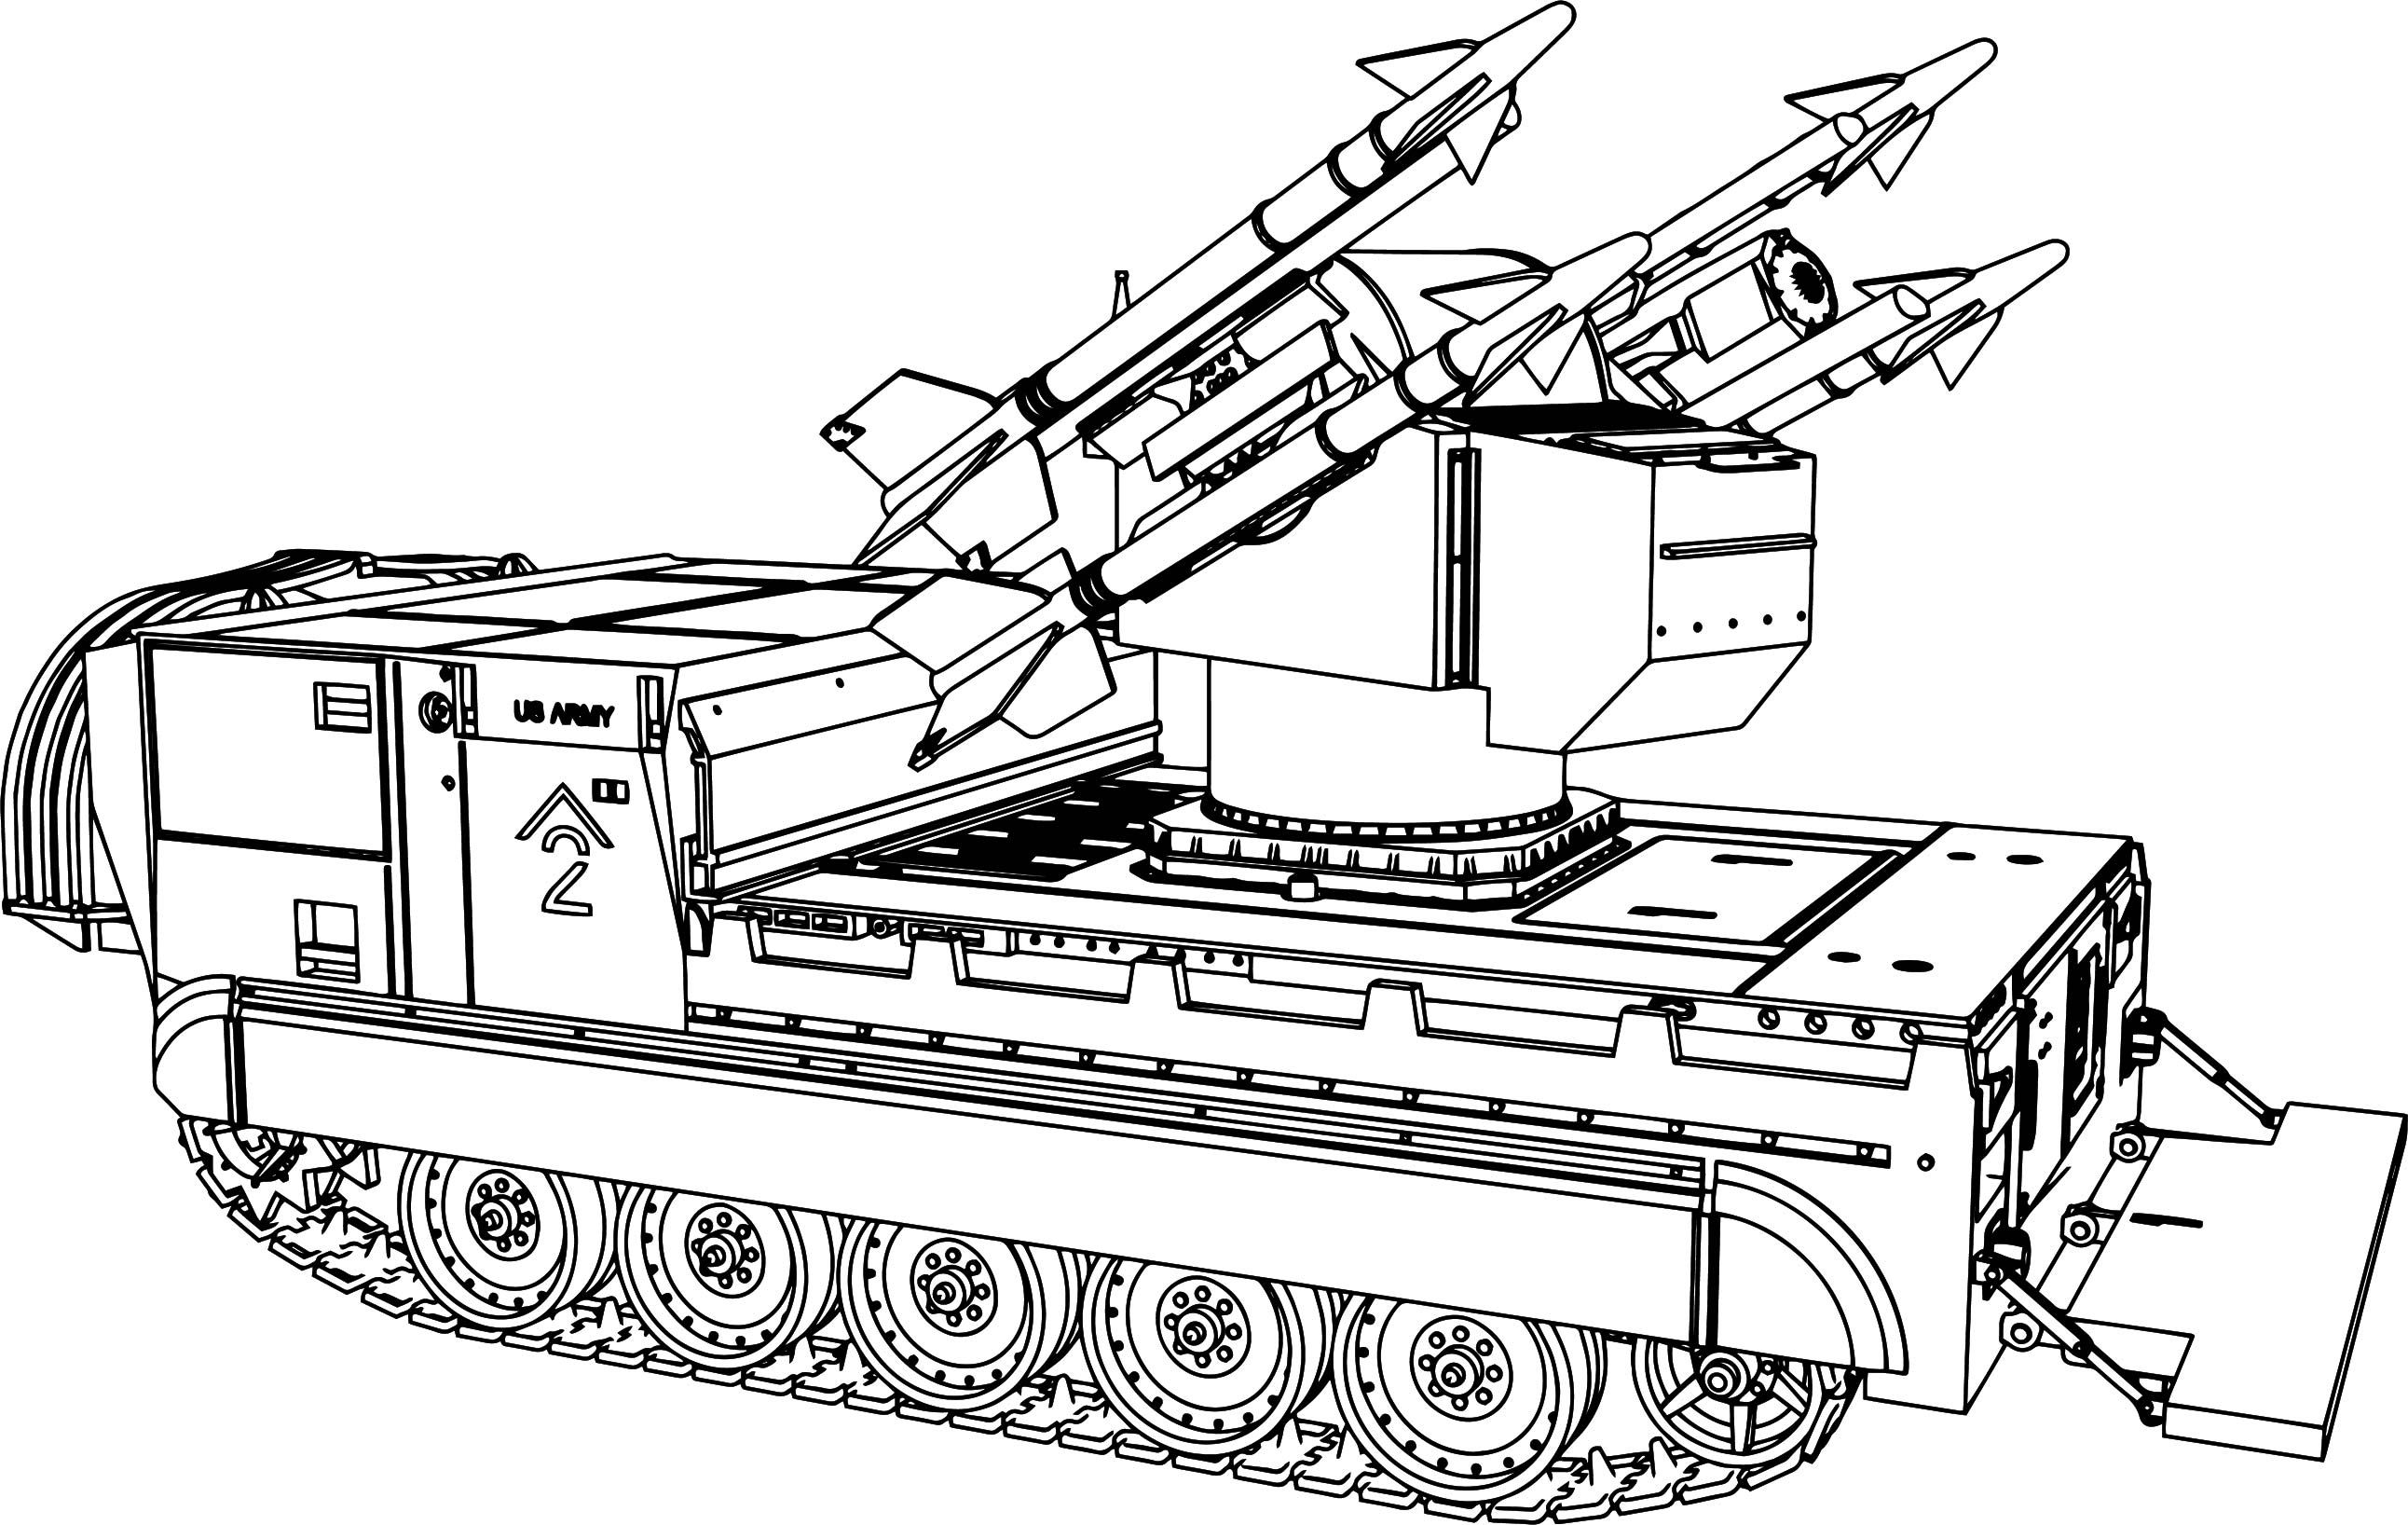 awesome M730a1 Tank Coloring Page | Coloring pages, Lego ...